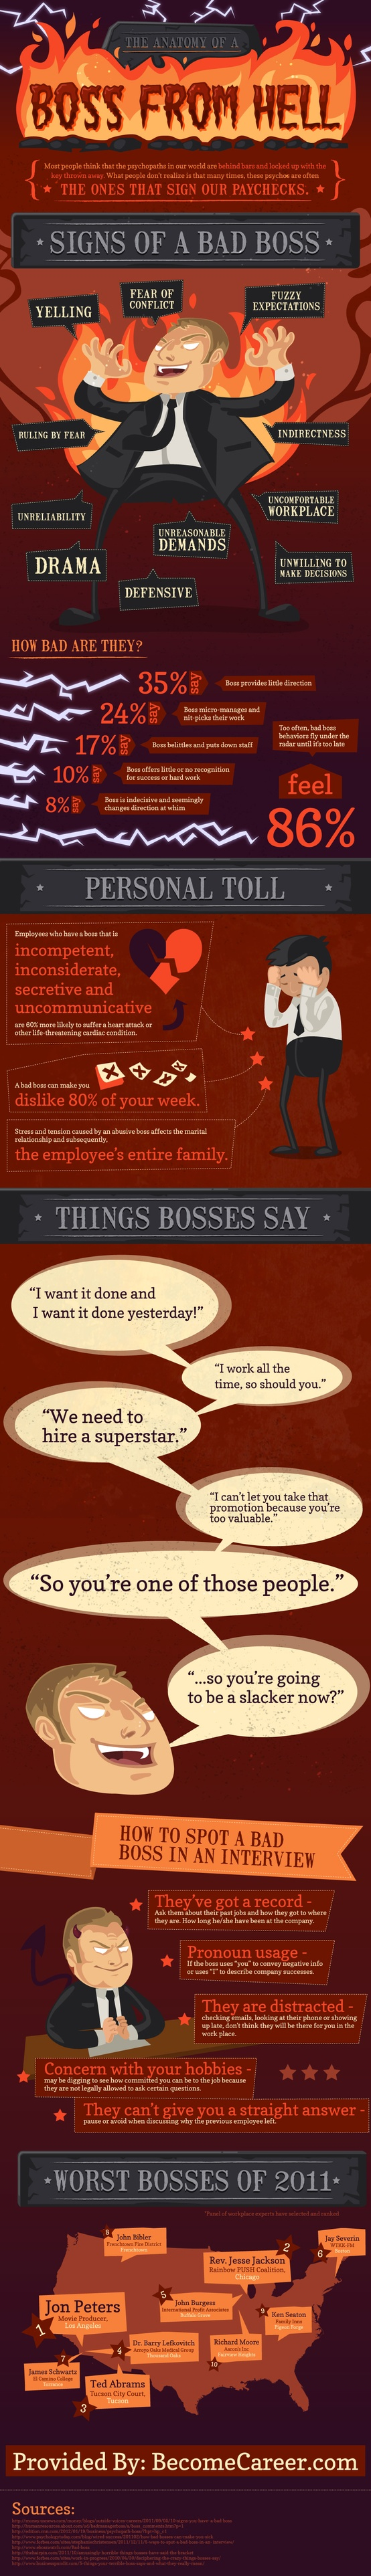 the anatomy of a boss from hell signs and how to spot a bad boss the anatomy of a boss from hell signs and how to spot a bad boss